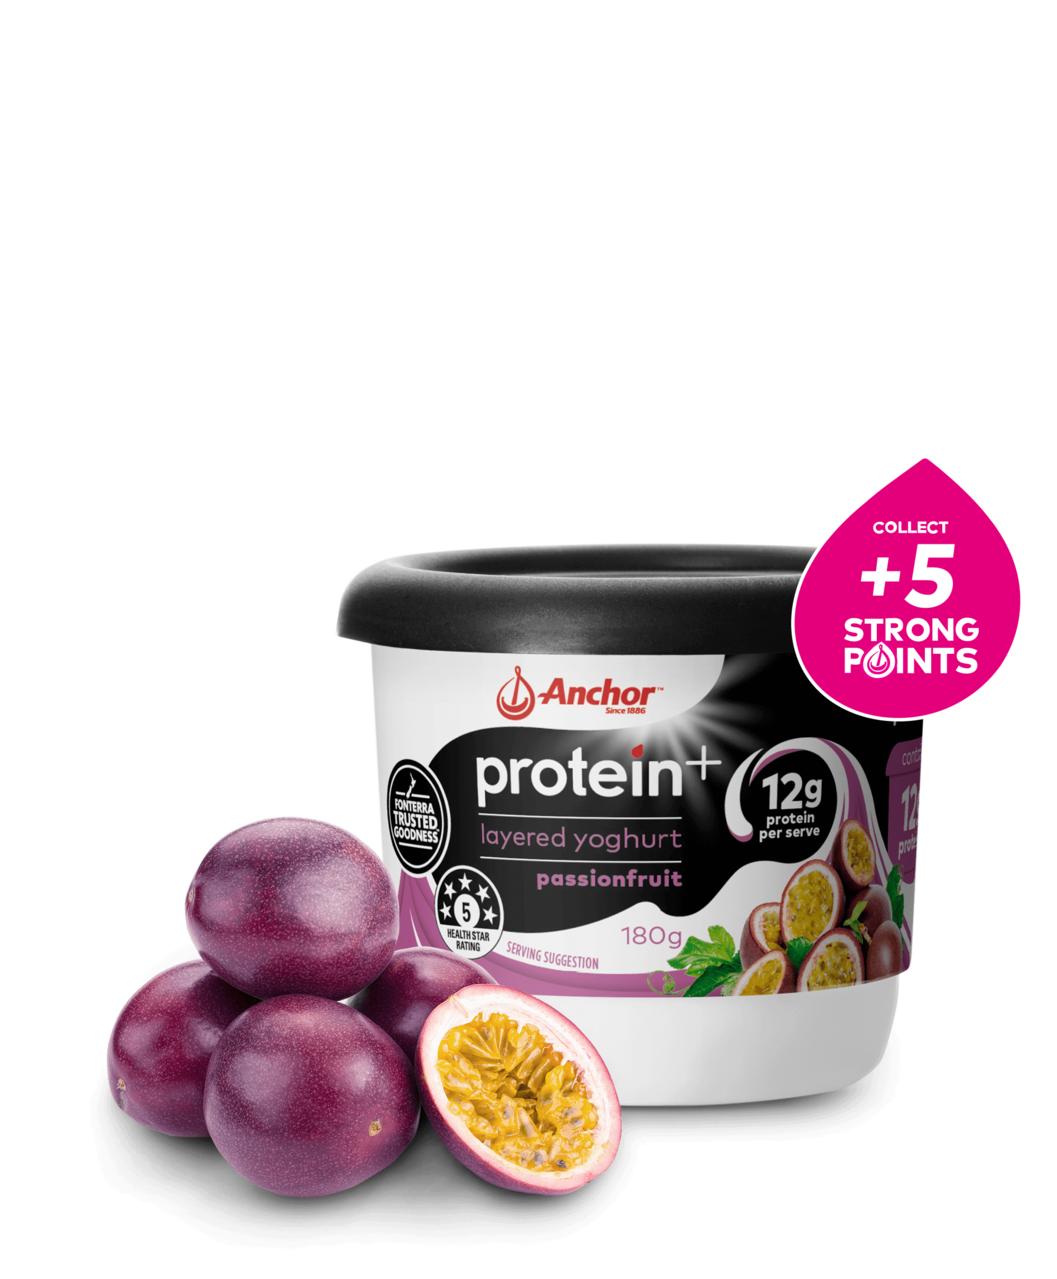 Anchor Protein+ Passionfruit Yoghurt 180g pack